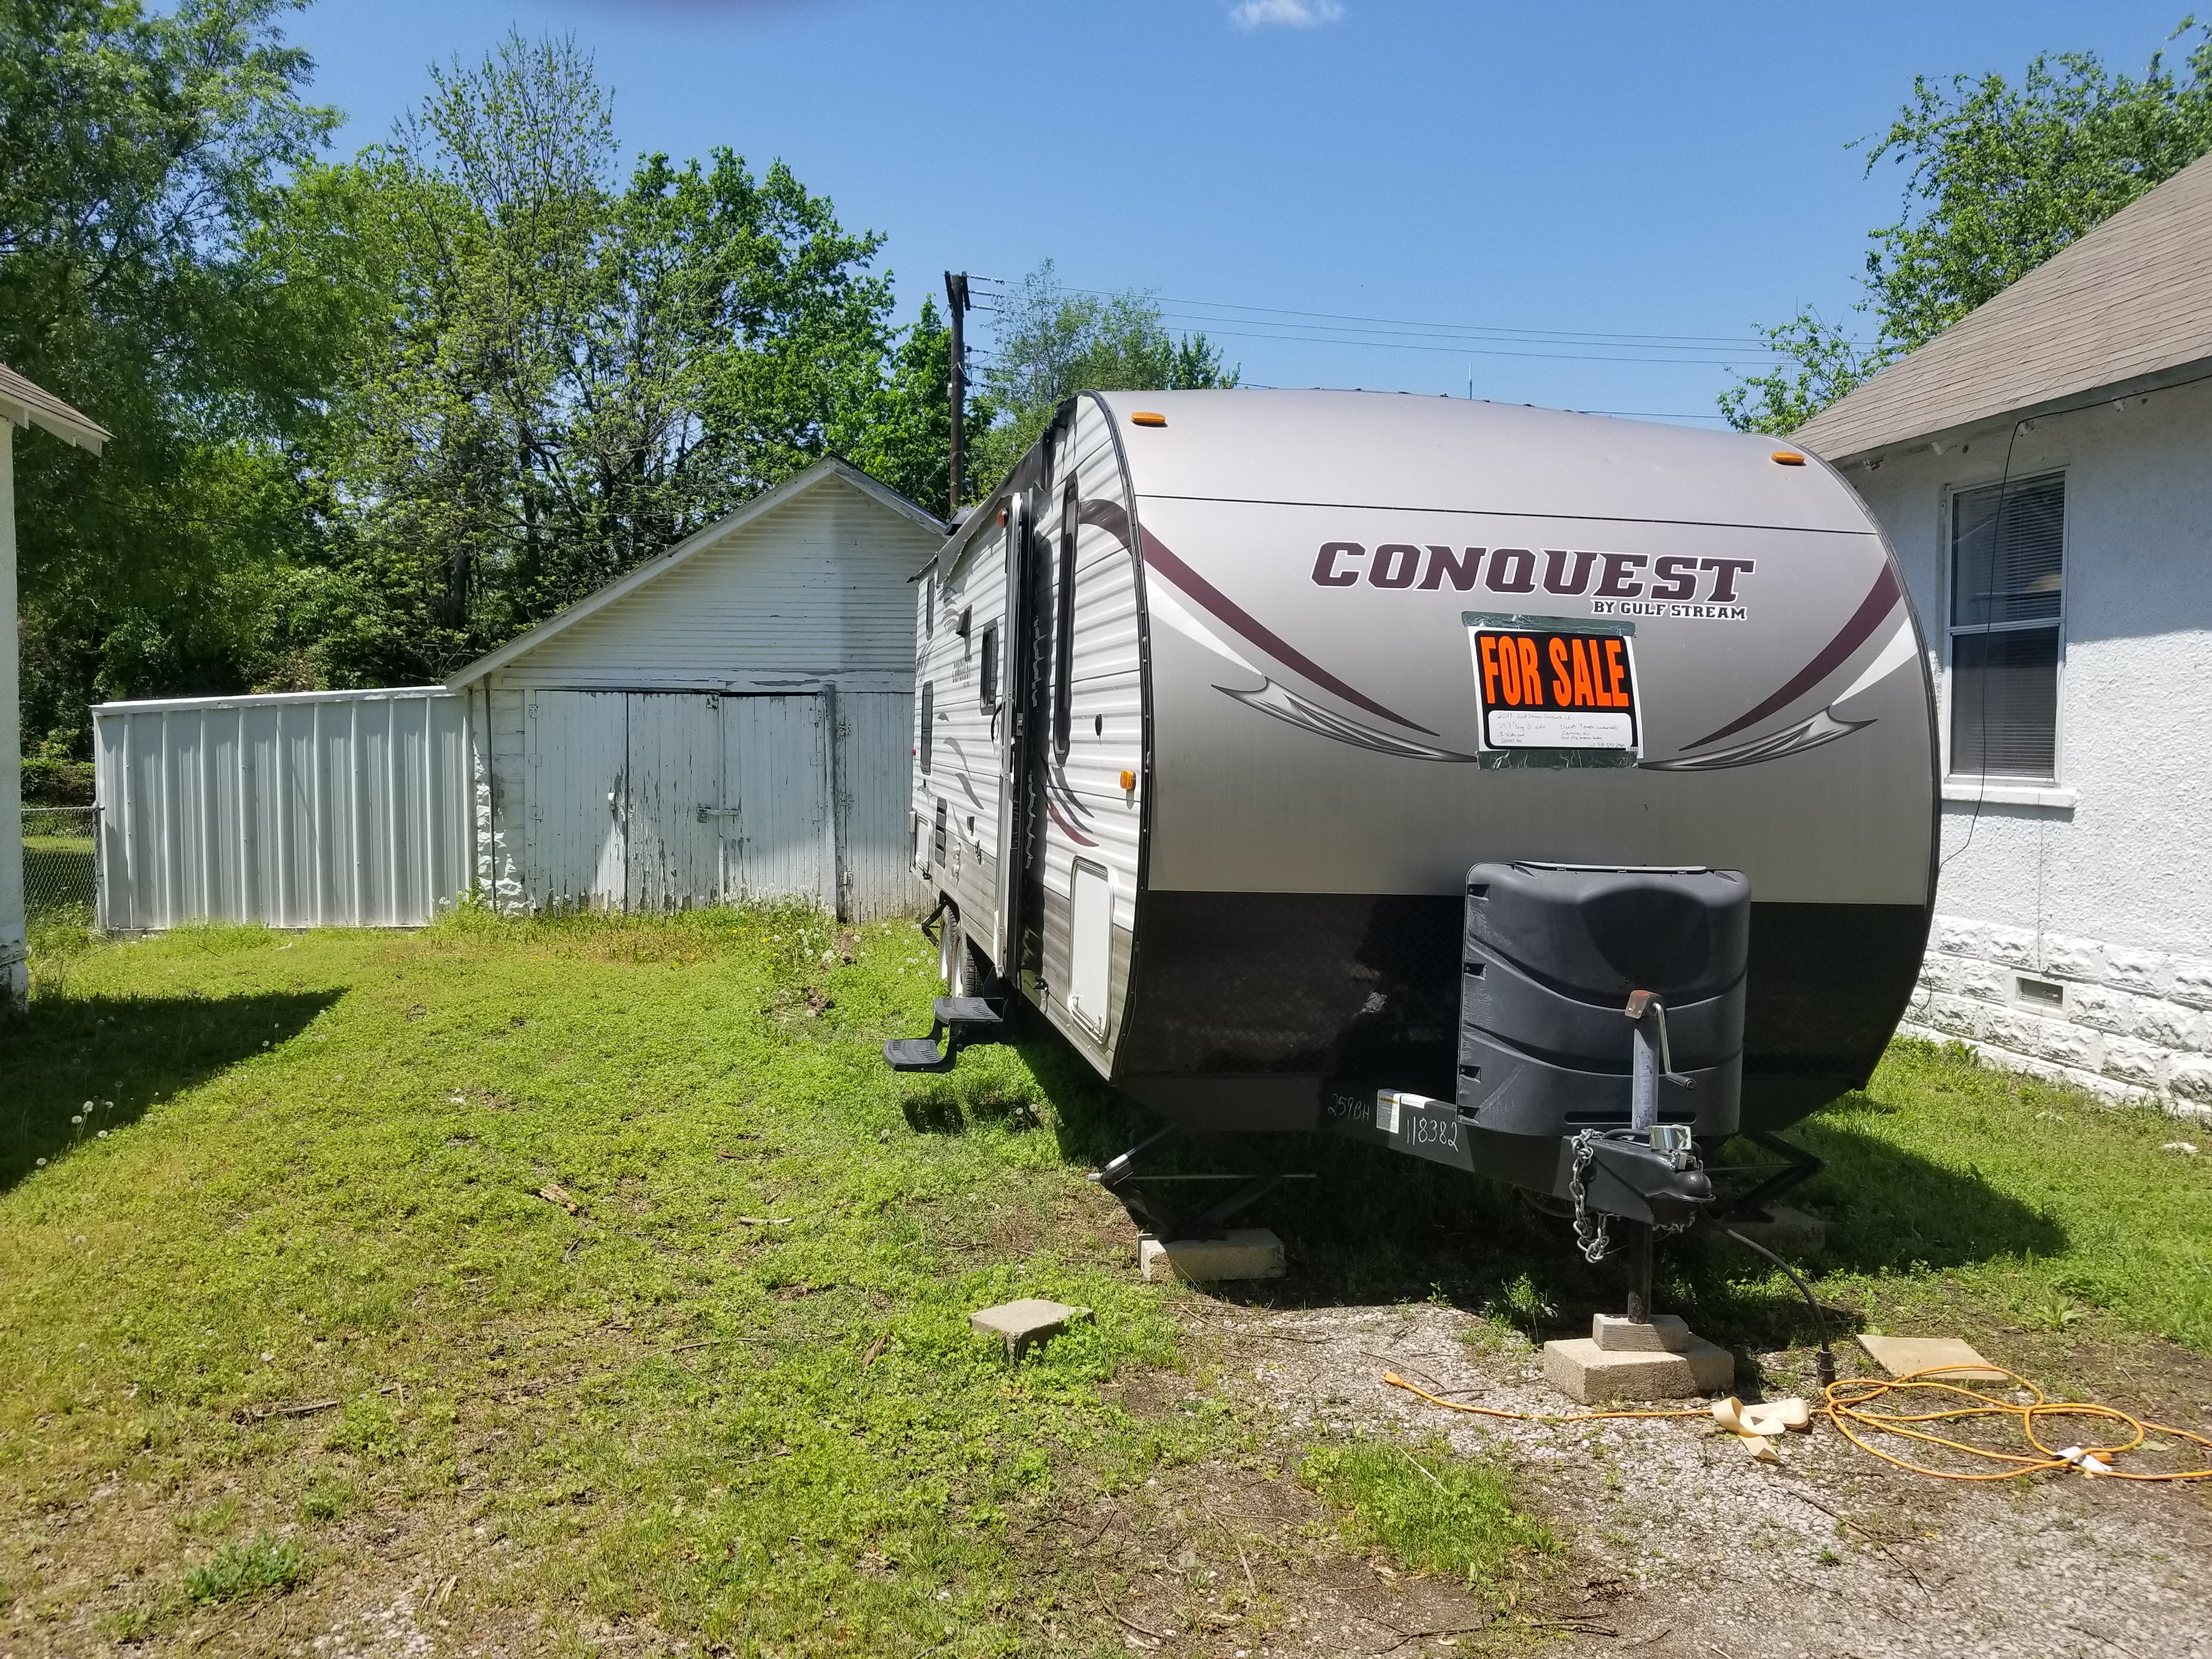 Carefree Mobile Home Park Joplin Mo on